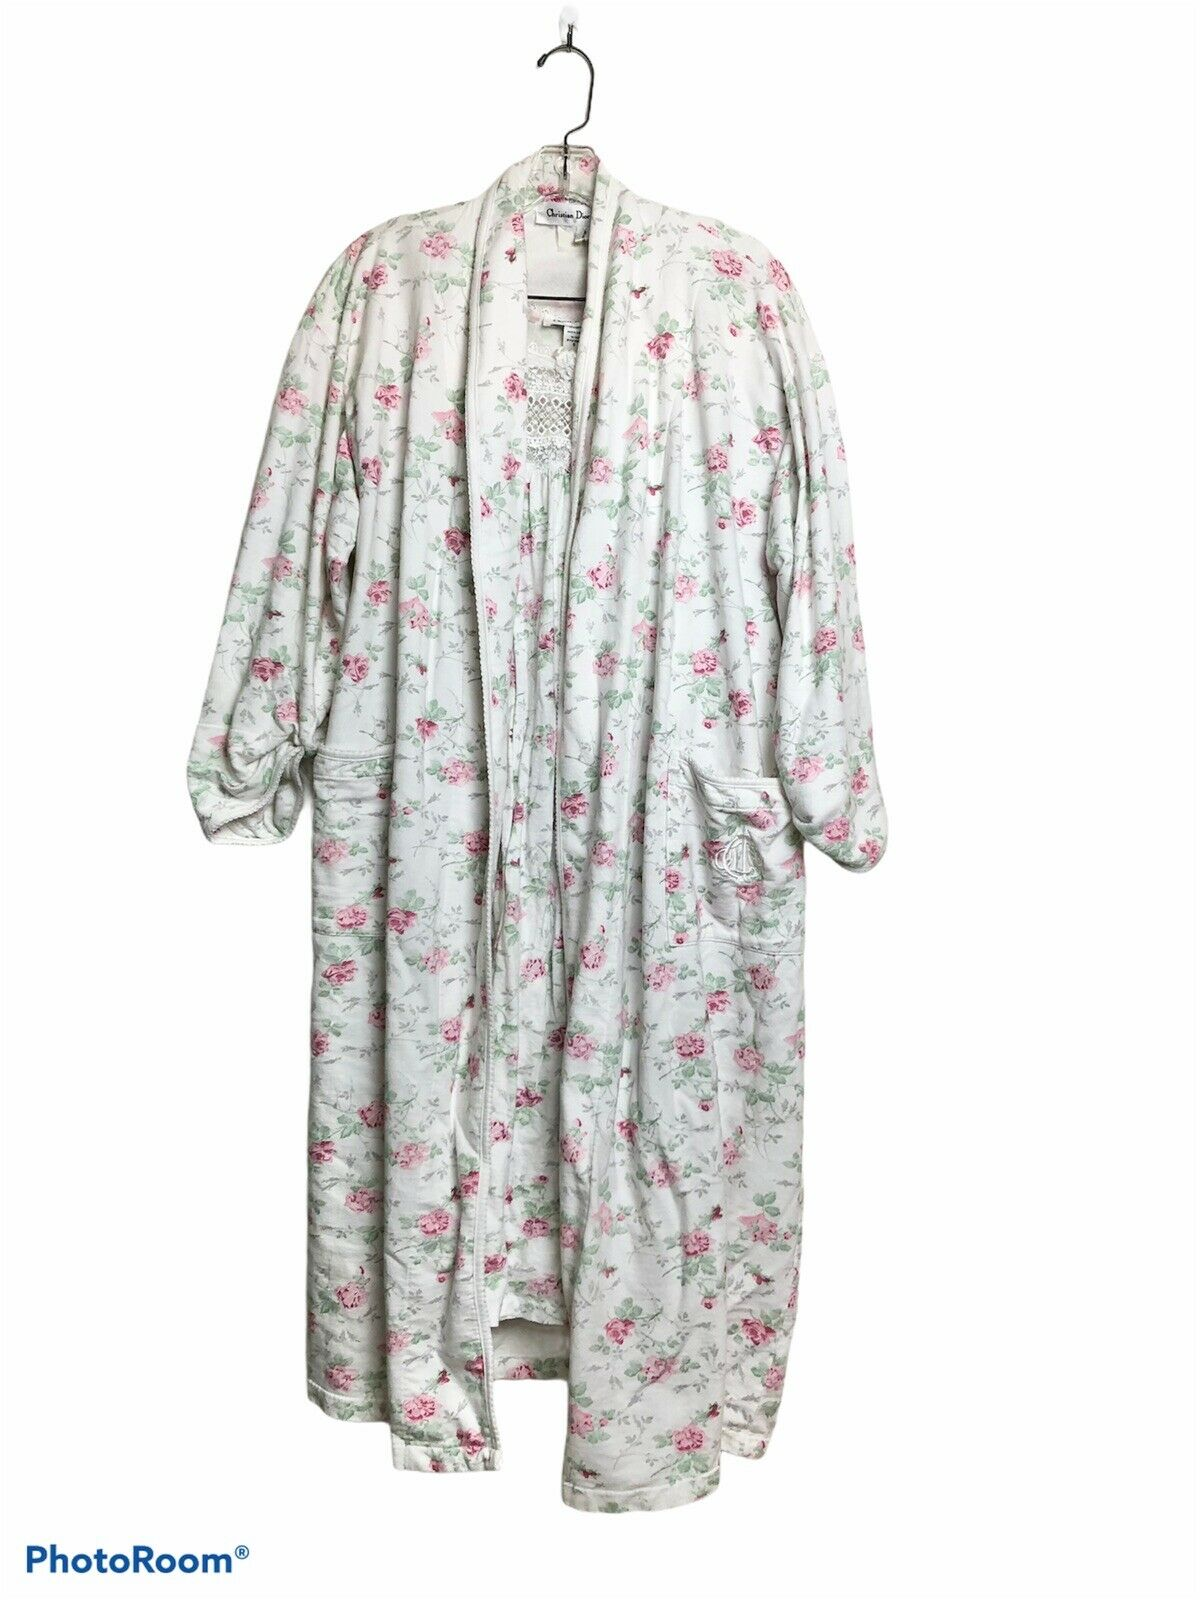 Vintage Christian Dior Nightgown Robe Set Floral Lace Cotton Womens S